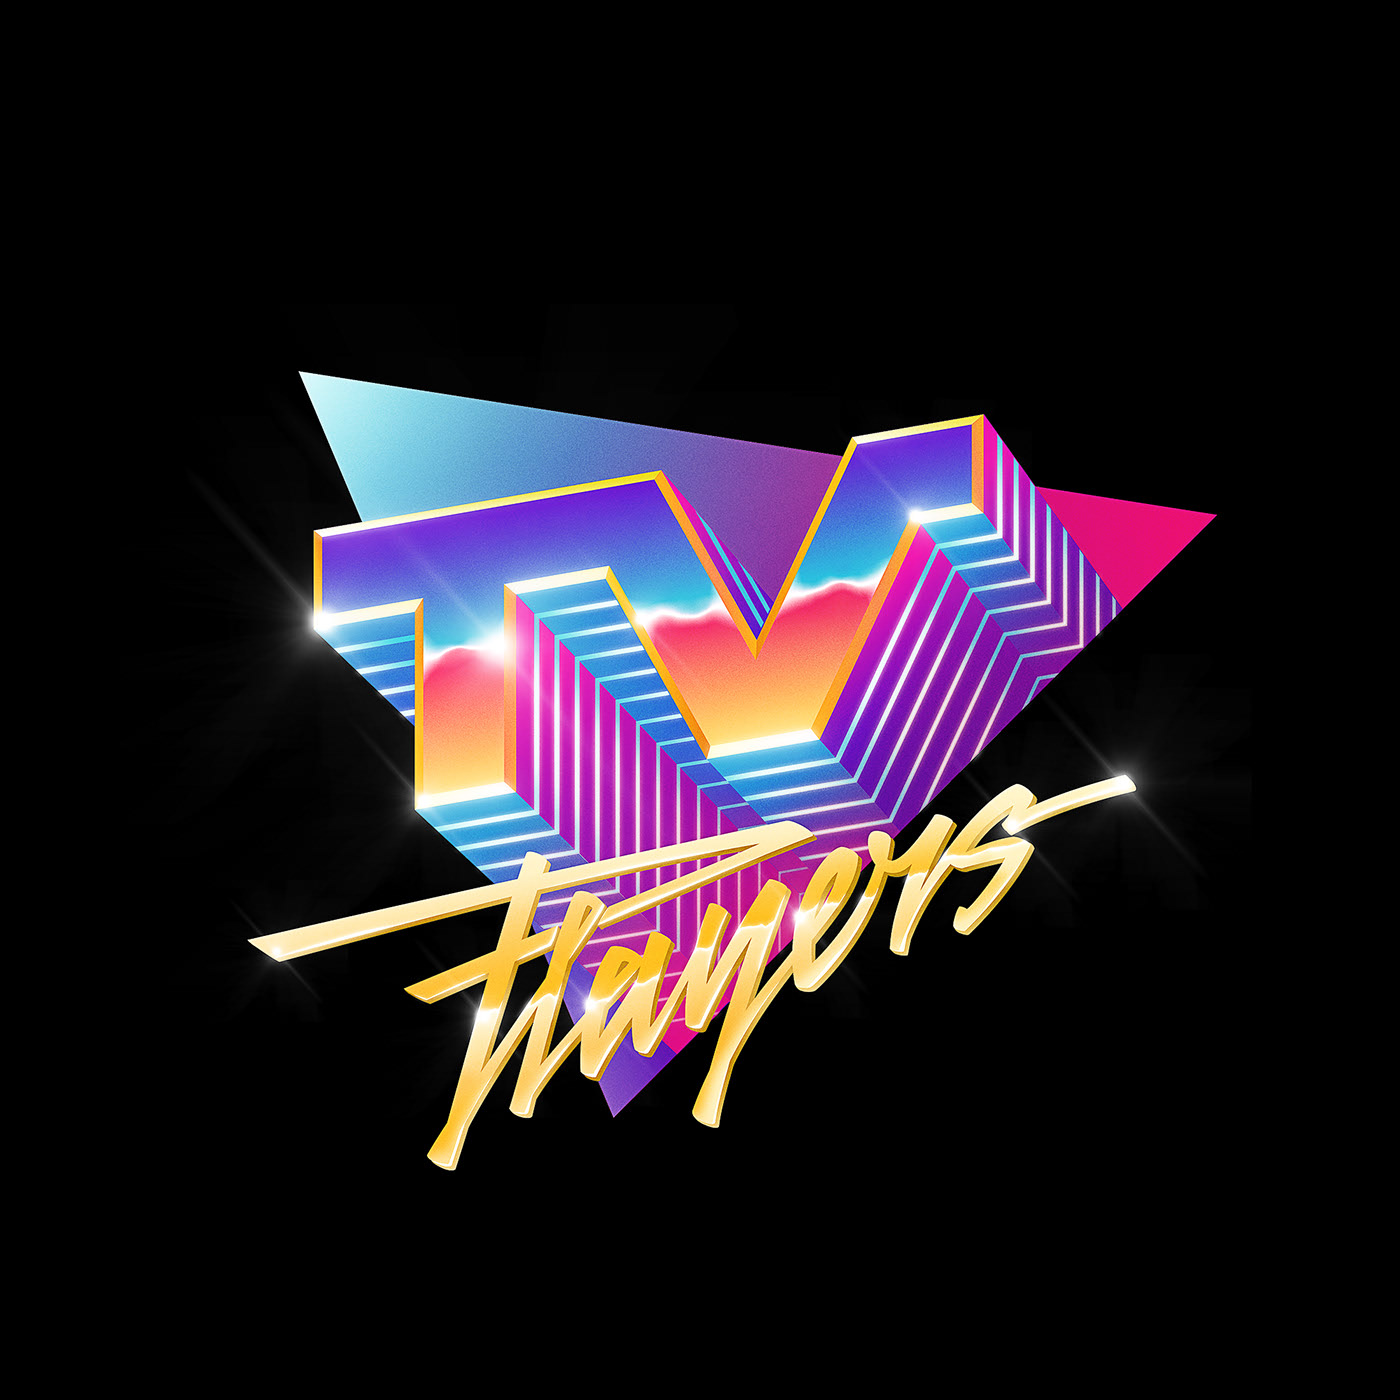 Pin by Bobby Johnes on 80s logos Synthwave, Synthwave